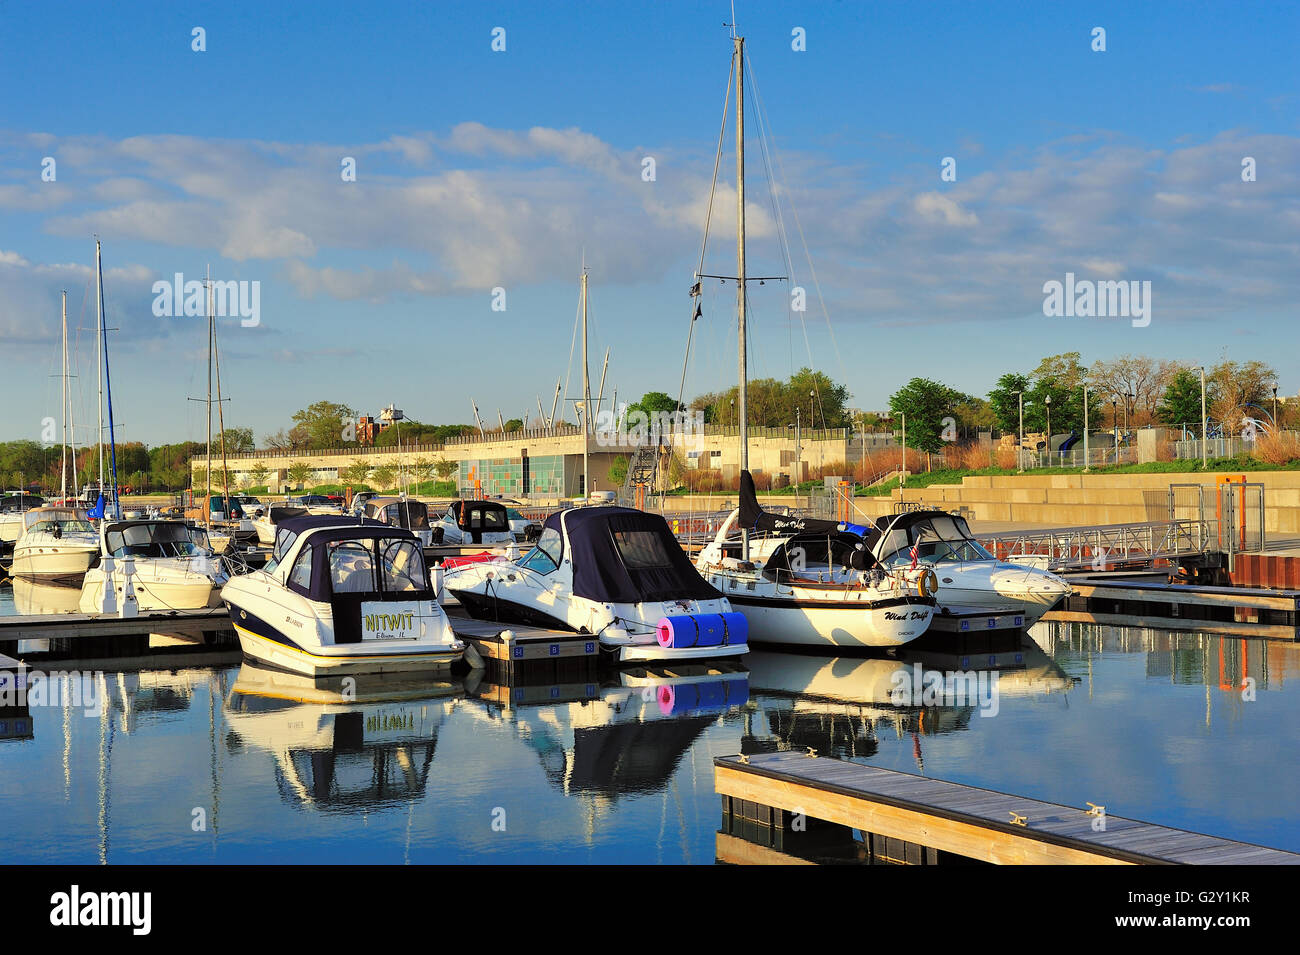 Shortly after sunrise, calm water in Chicago's 31st Street Harbor provides reflections of pleasure craft in - Stock Image